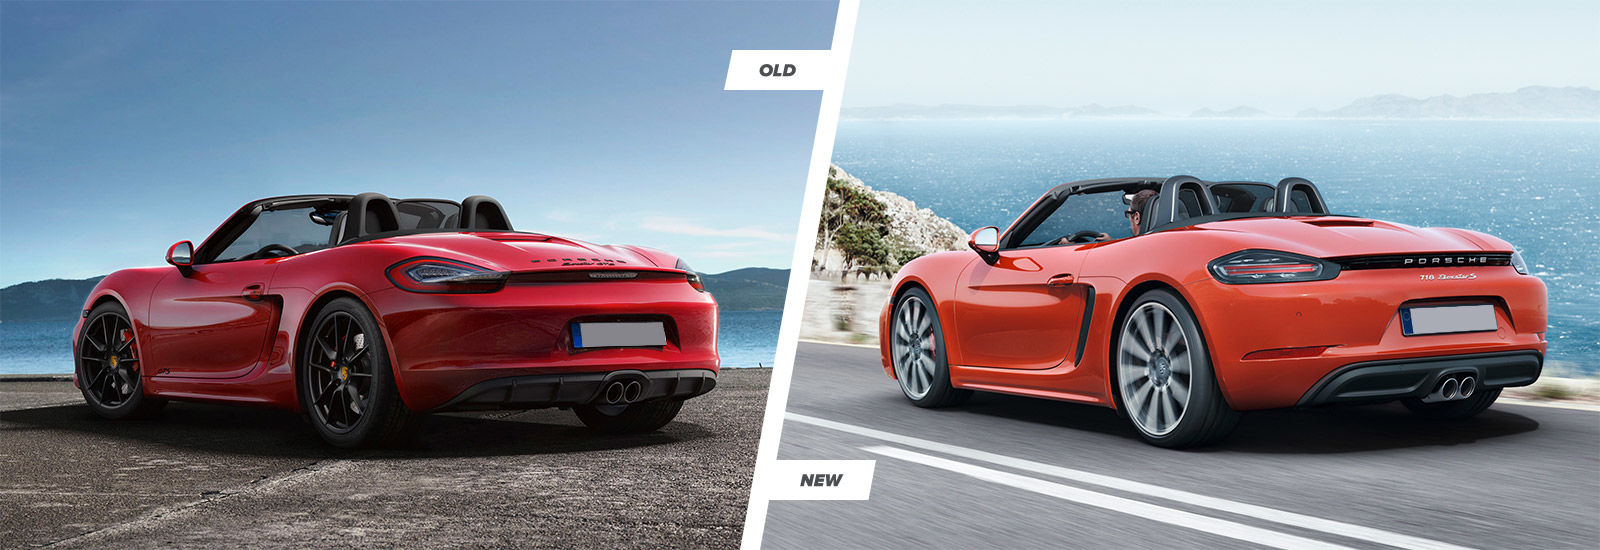 Porsche 718 Boxster old vs new price and release date